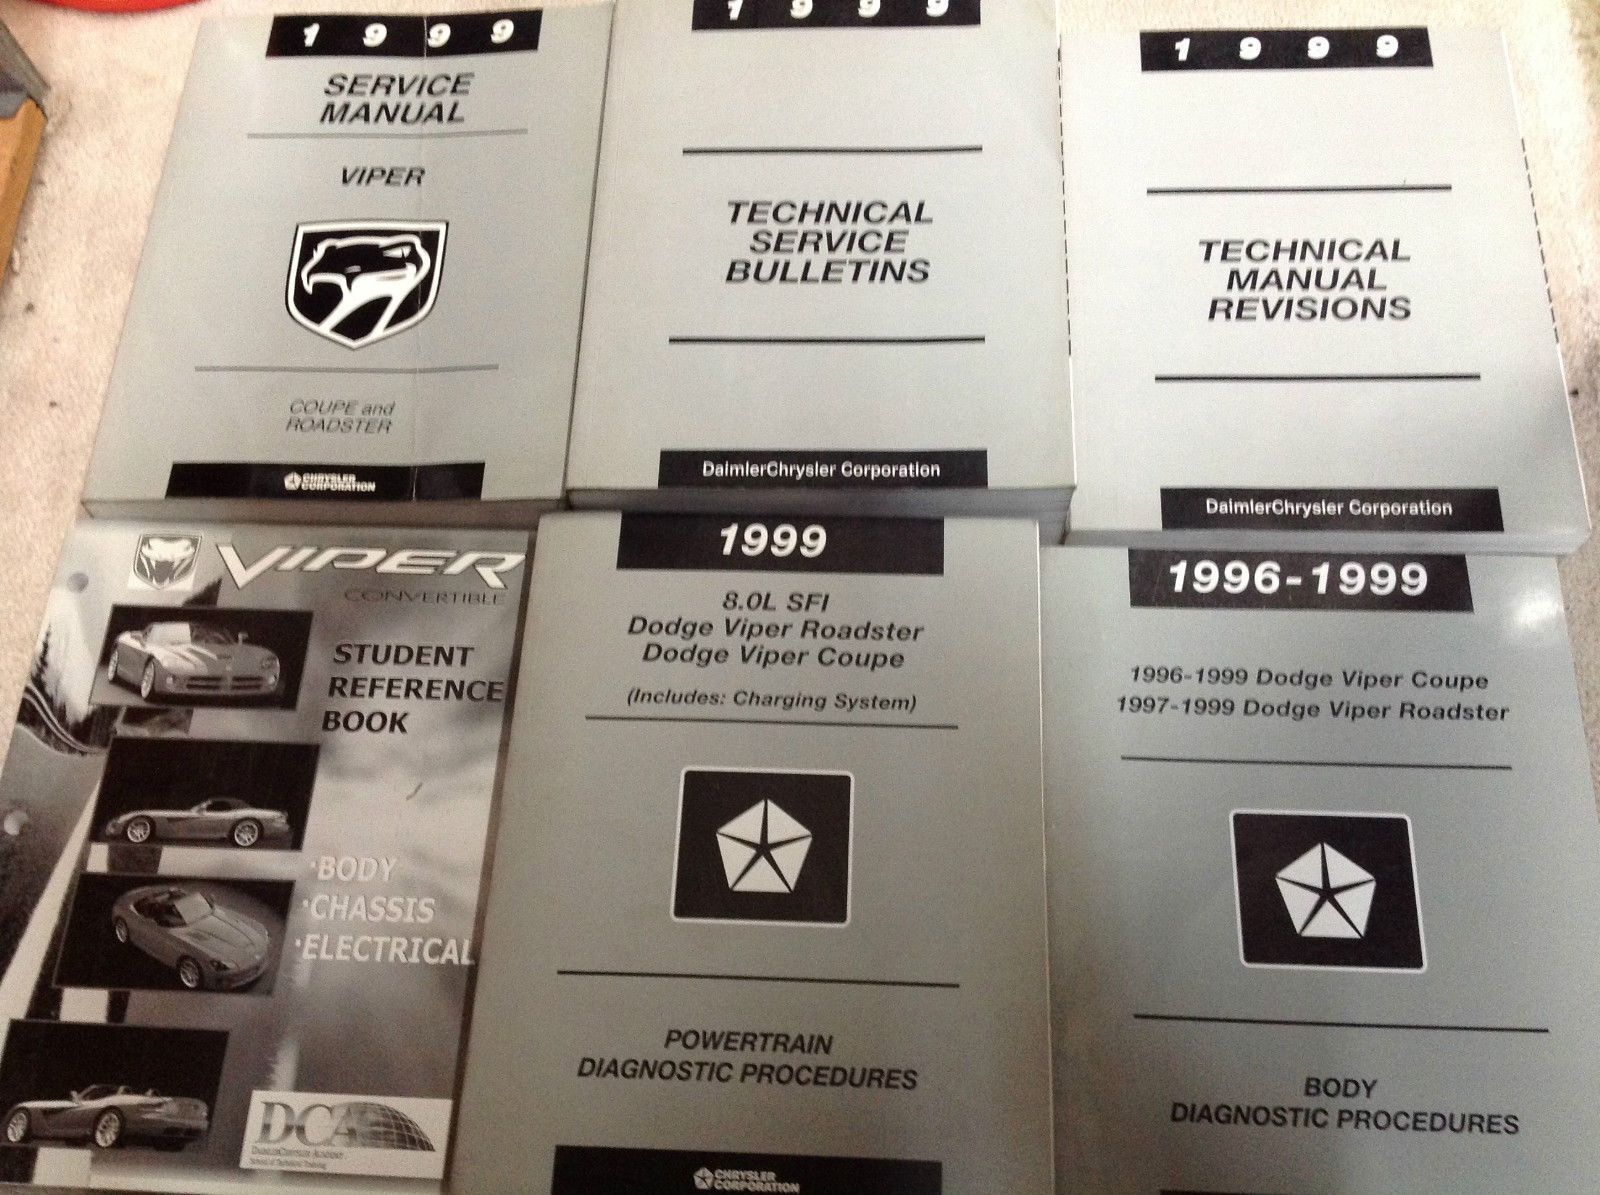 1999 Dodge Viper Coupe Roadster Service Shop Manual SET W BULLETINS + REVISIONS